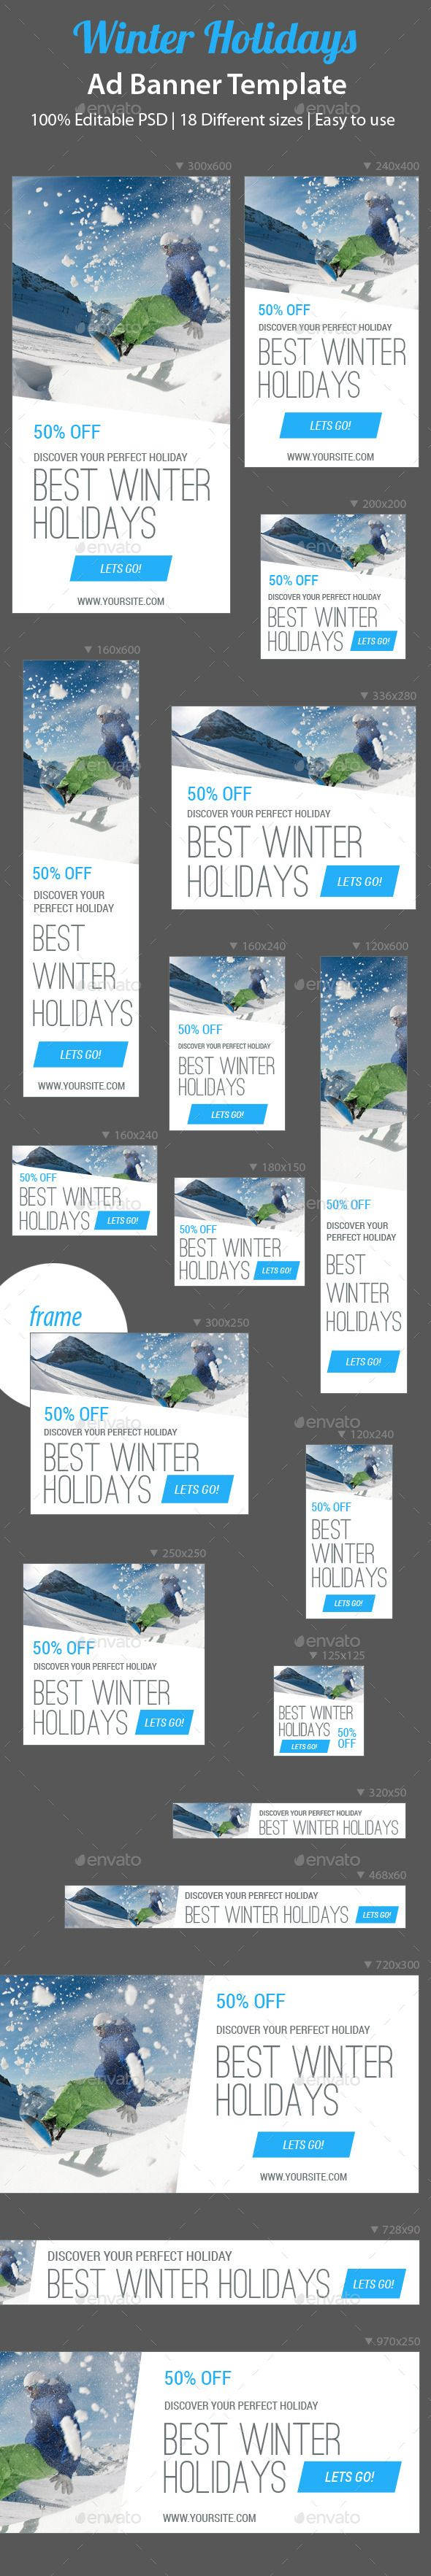 Winter Holidays Web Ad Banners Template PSD   Buy and Download: http://graphicriver.net/item/winter-holidays-web-ad-banners/9169588?WT.ac=category_thumb&WT.z_author=ksioks&ref=ksioks